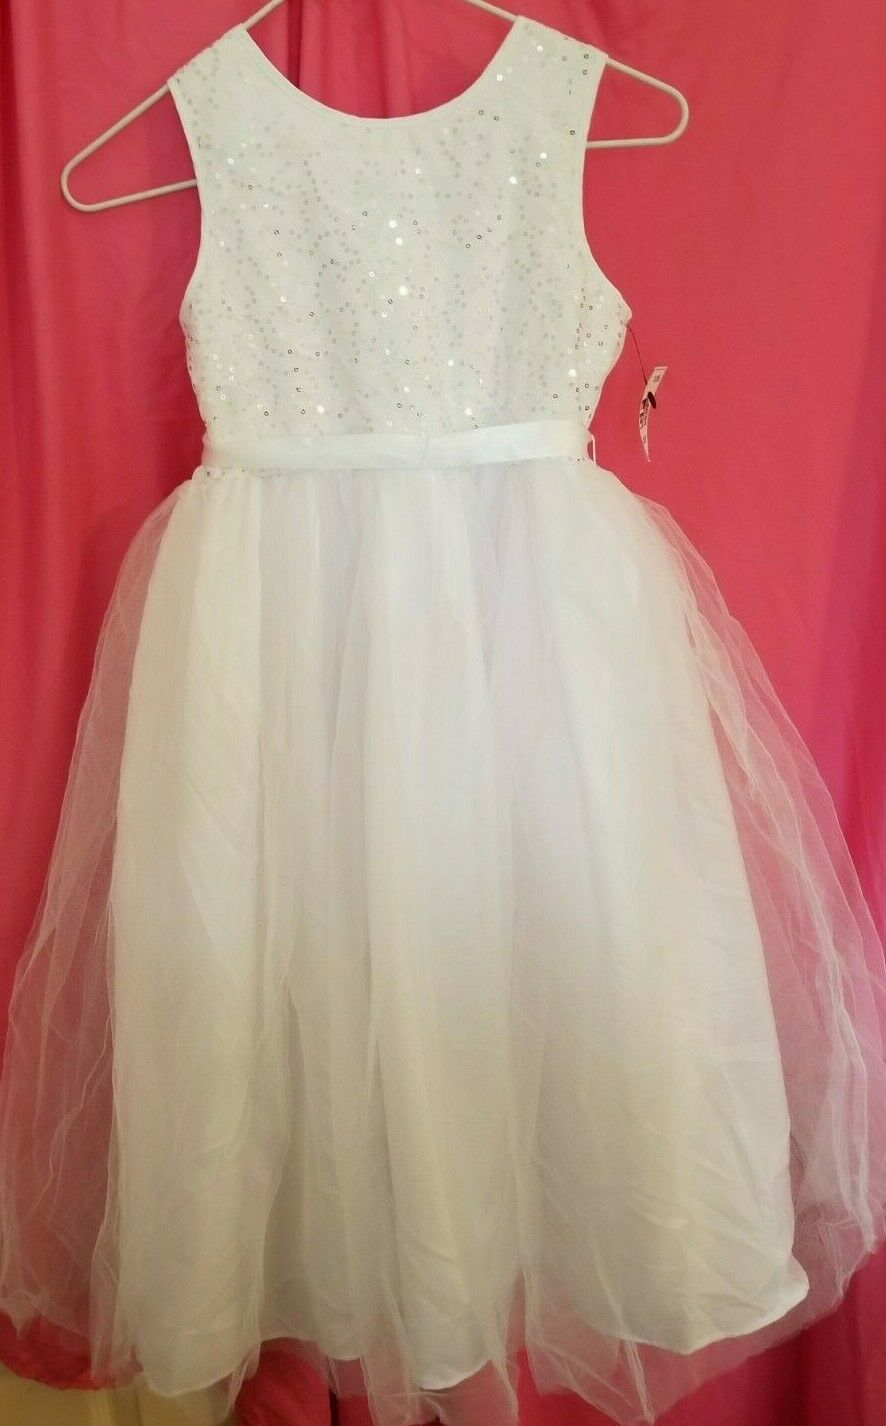 NWT Girl's Tevolio White Lace and Tulle Flower Girl Dress Size 8